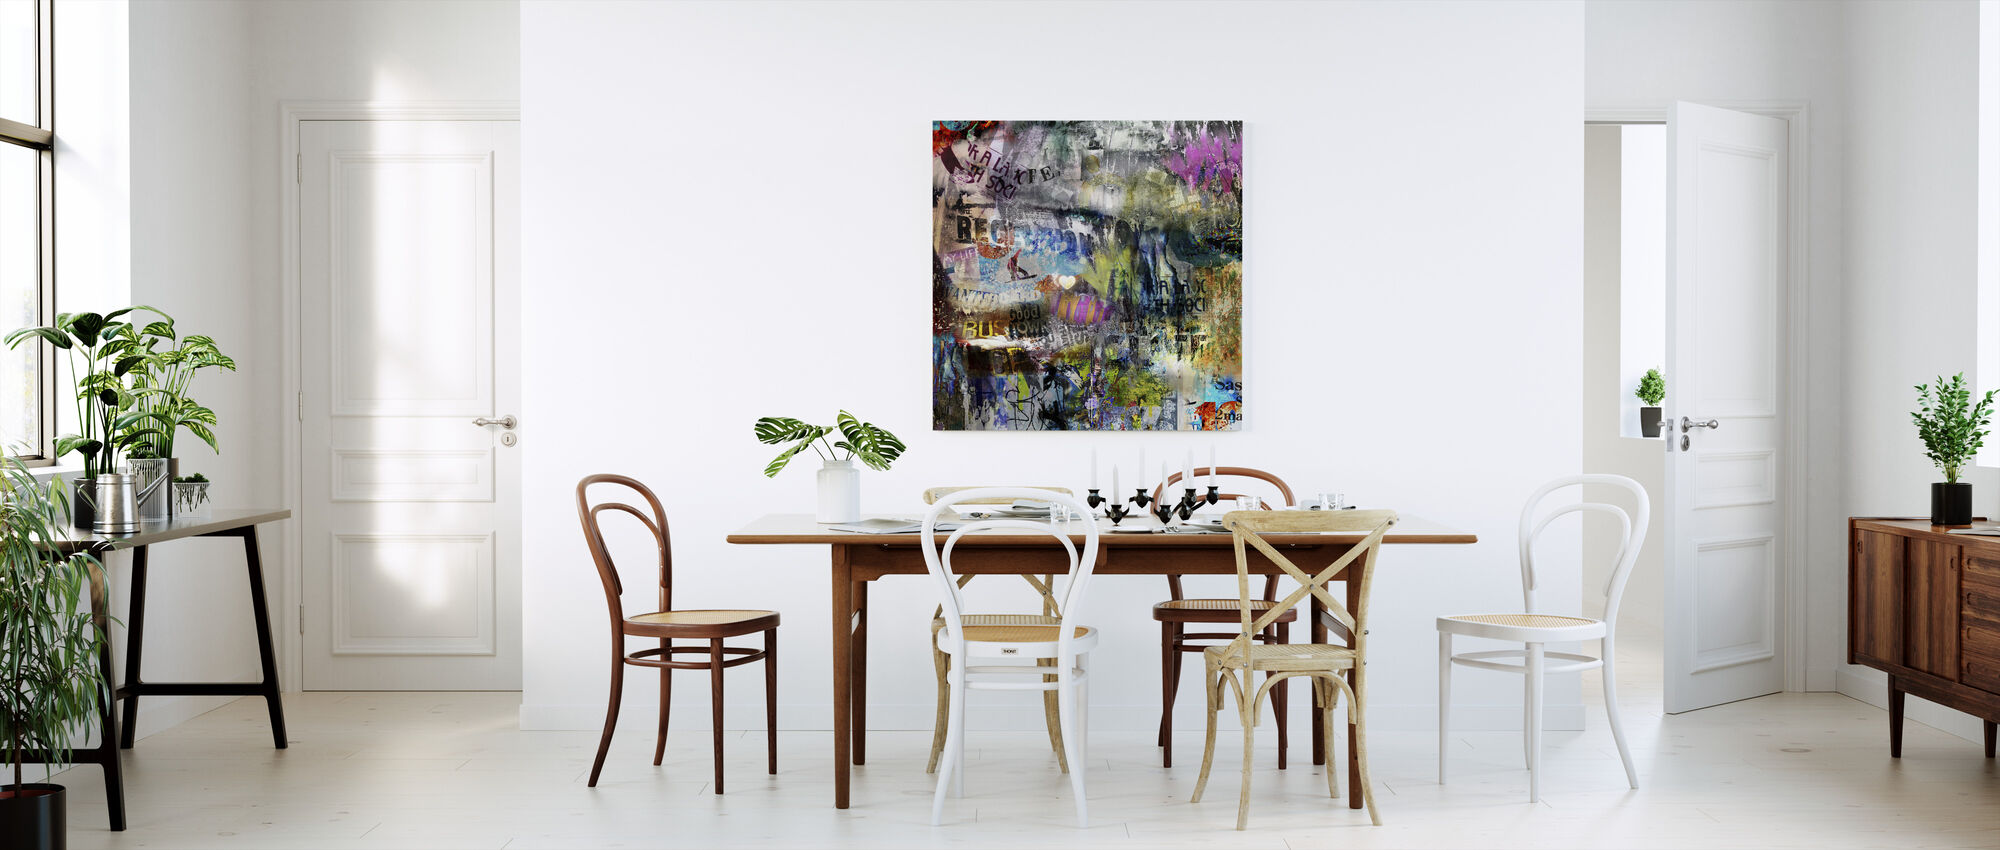 Torn Posters - Canvas print - Kitchen